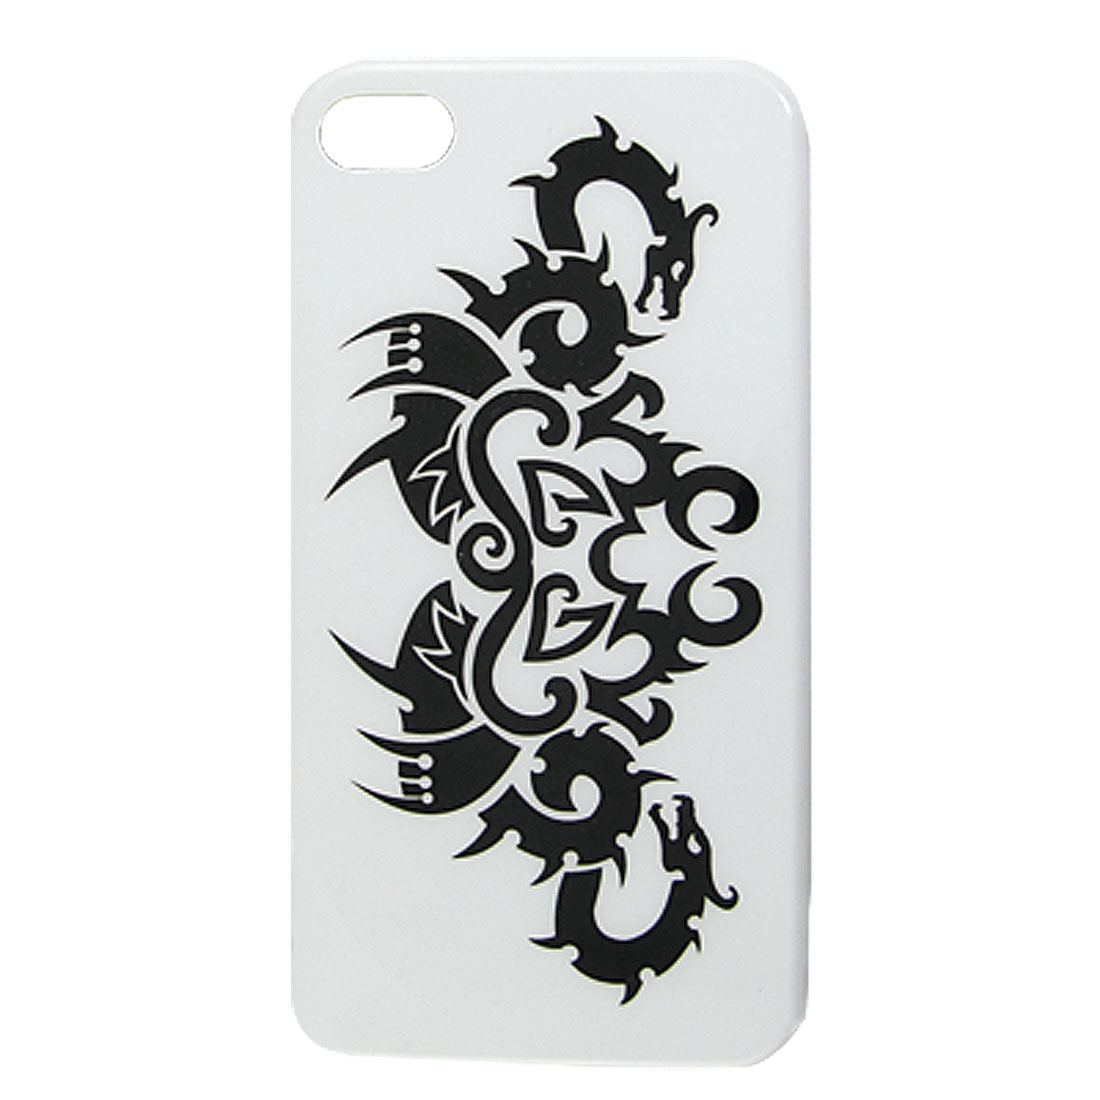 Black Dragon Pattern IMD White Hard Plastic Protective Back Case Shell for iPhone 4 4G 4S